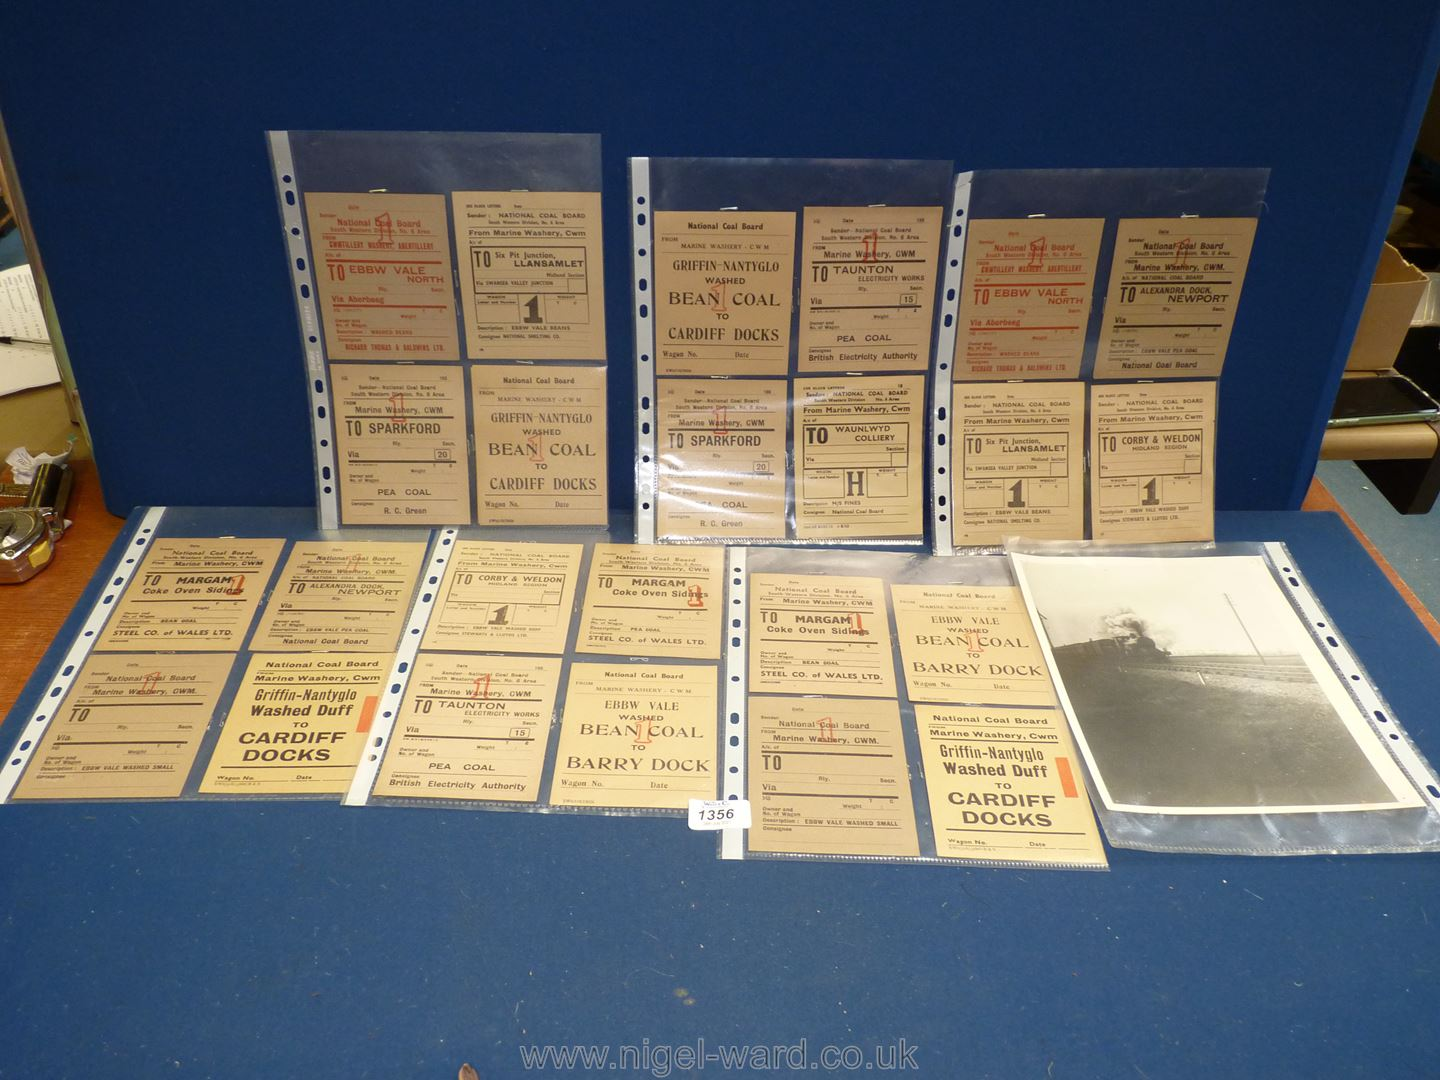 24 early 1950's Railway Wagon Welsh Coalfields Steam era tickets and a black and white steam train